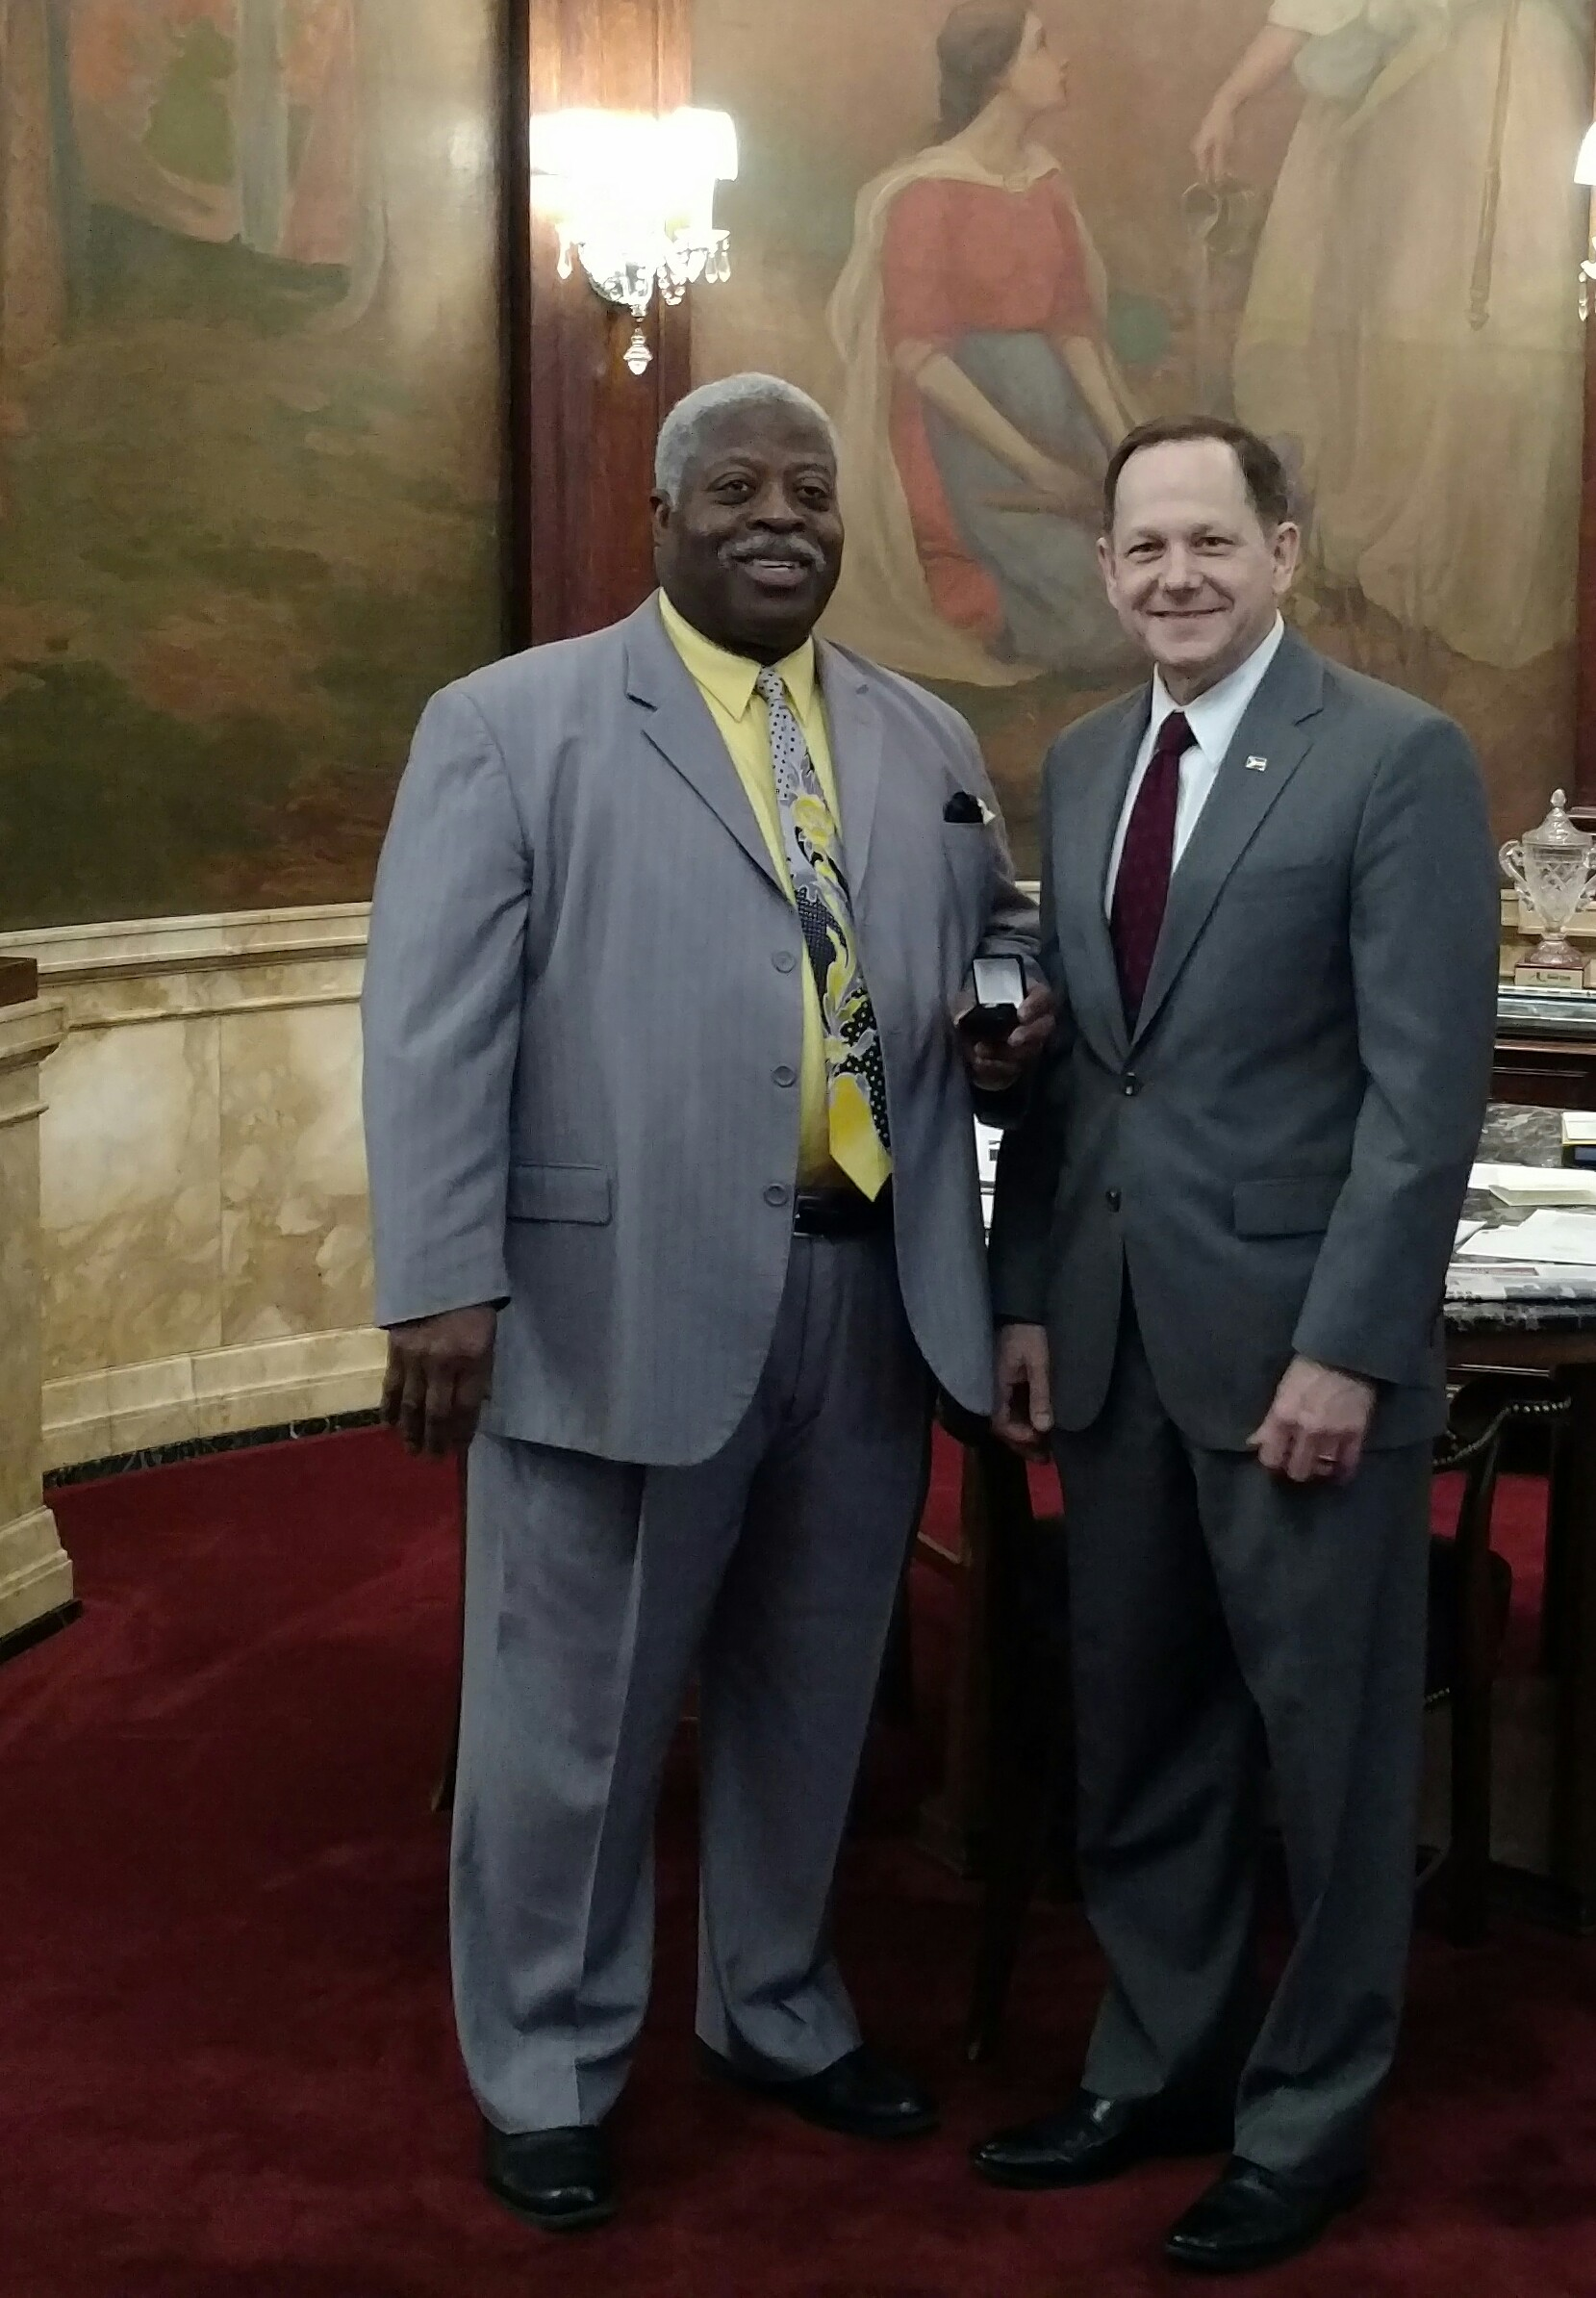 Robert Cotton receives his 40-year service pin from Mayor Francis Slay